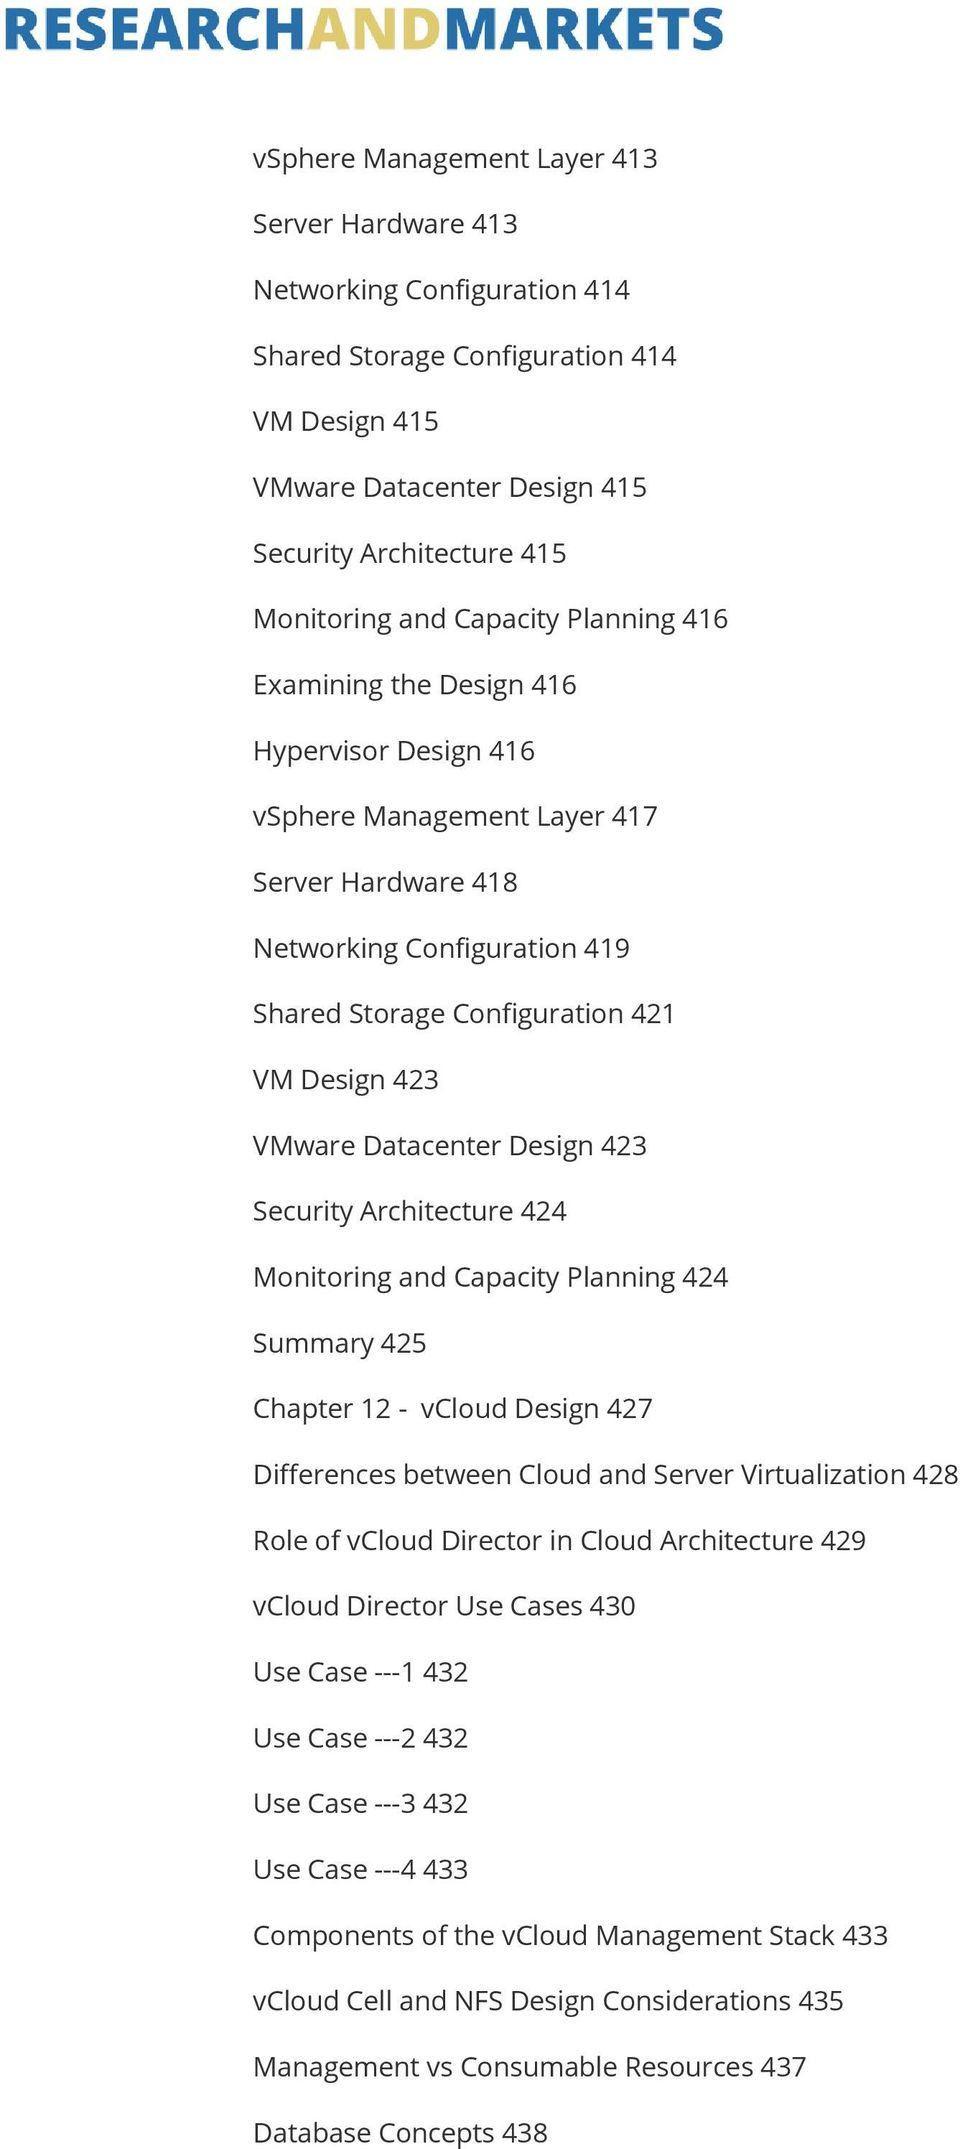 VMware Datacenter Design 423 Security Architecture 424 Monitoring and Capacity Planning 424 Summary 425 Chapter 12 - vcloud Design 427 Differences between Cloud and Server Virtualization 428 Role of